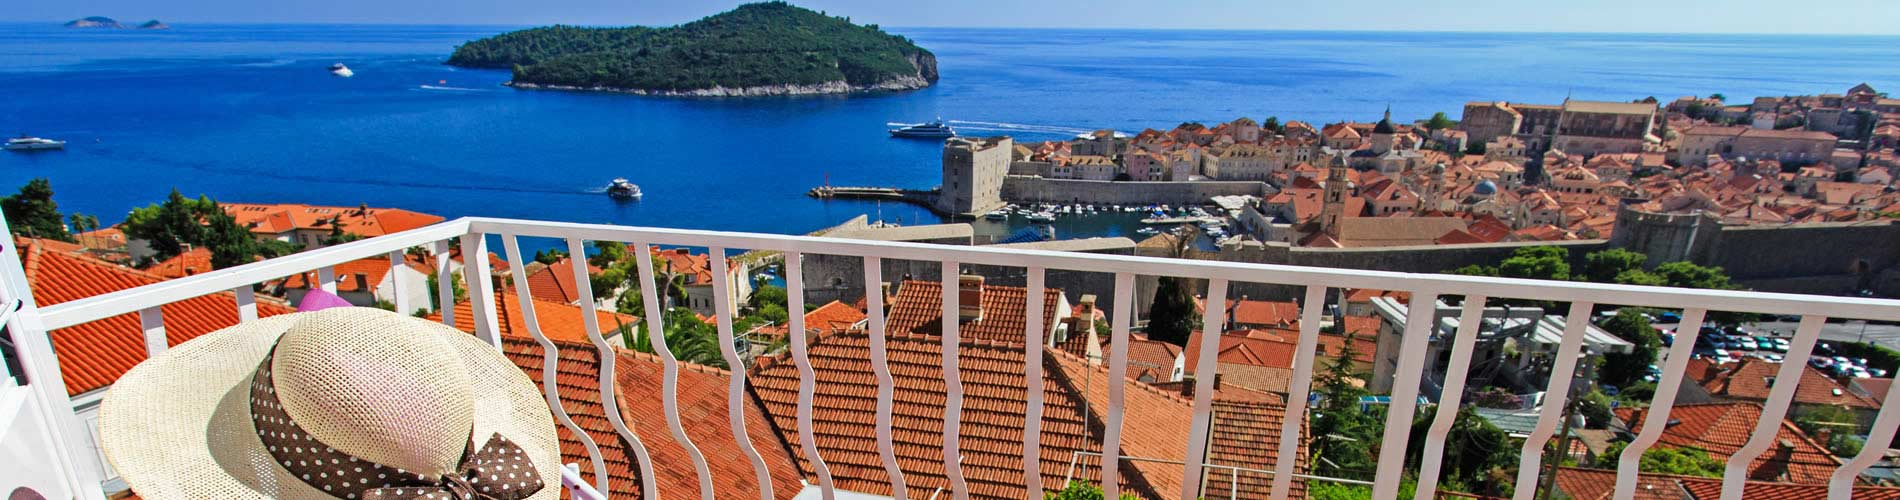 Dubrovnik Apartment